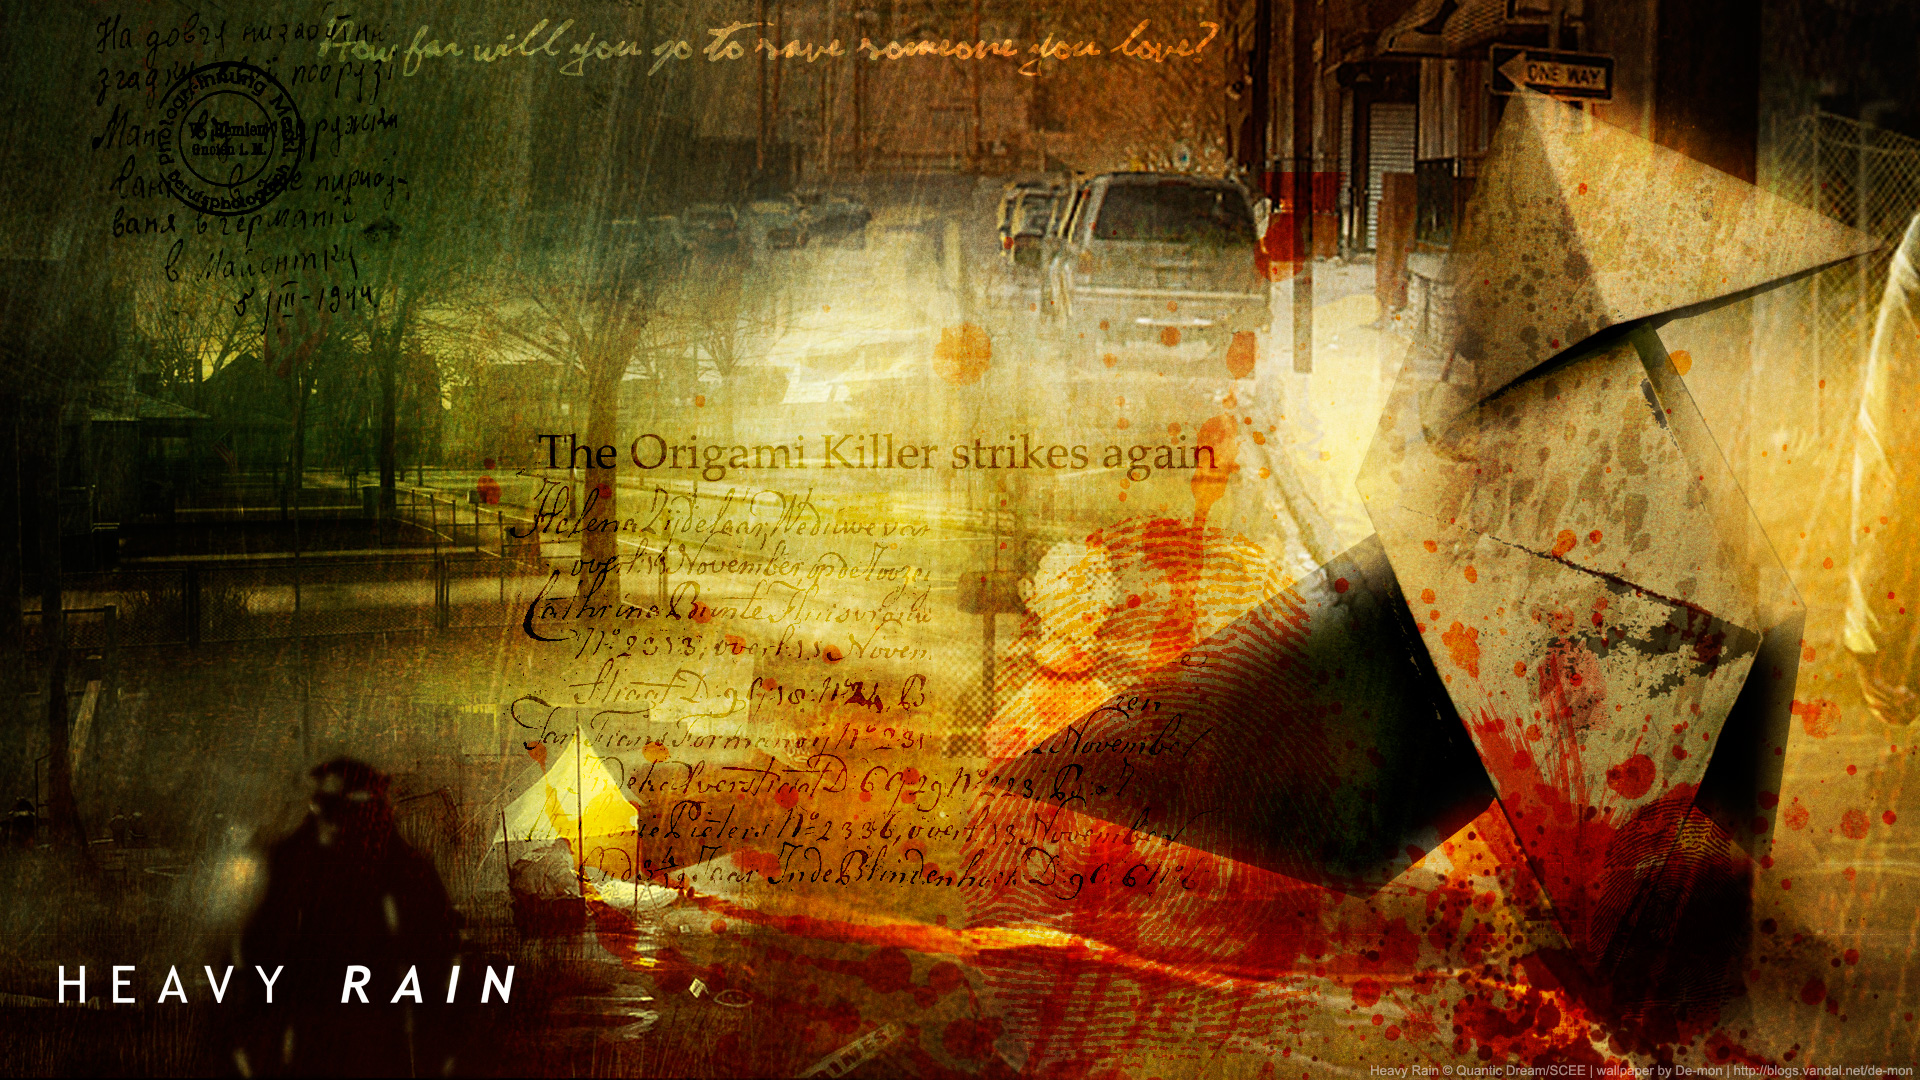 Free Download Heavy Rain Wallpaper Sammlung Trophiesde Ps4 Ps3 Ps